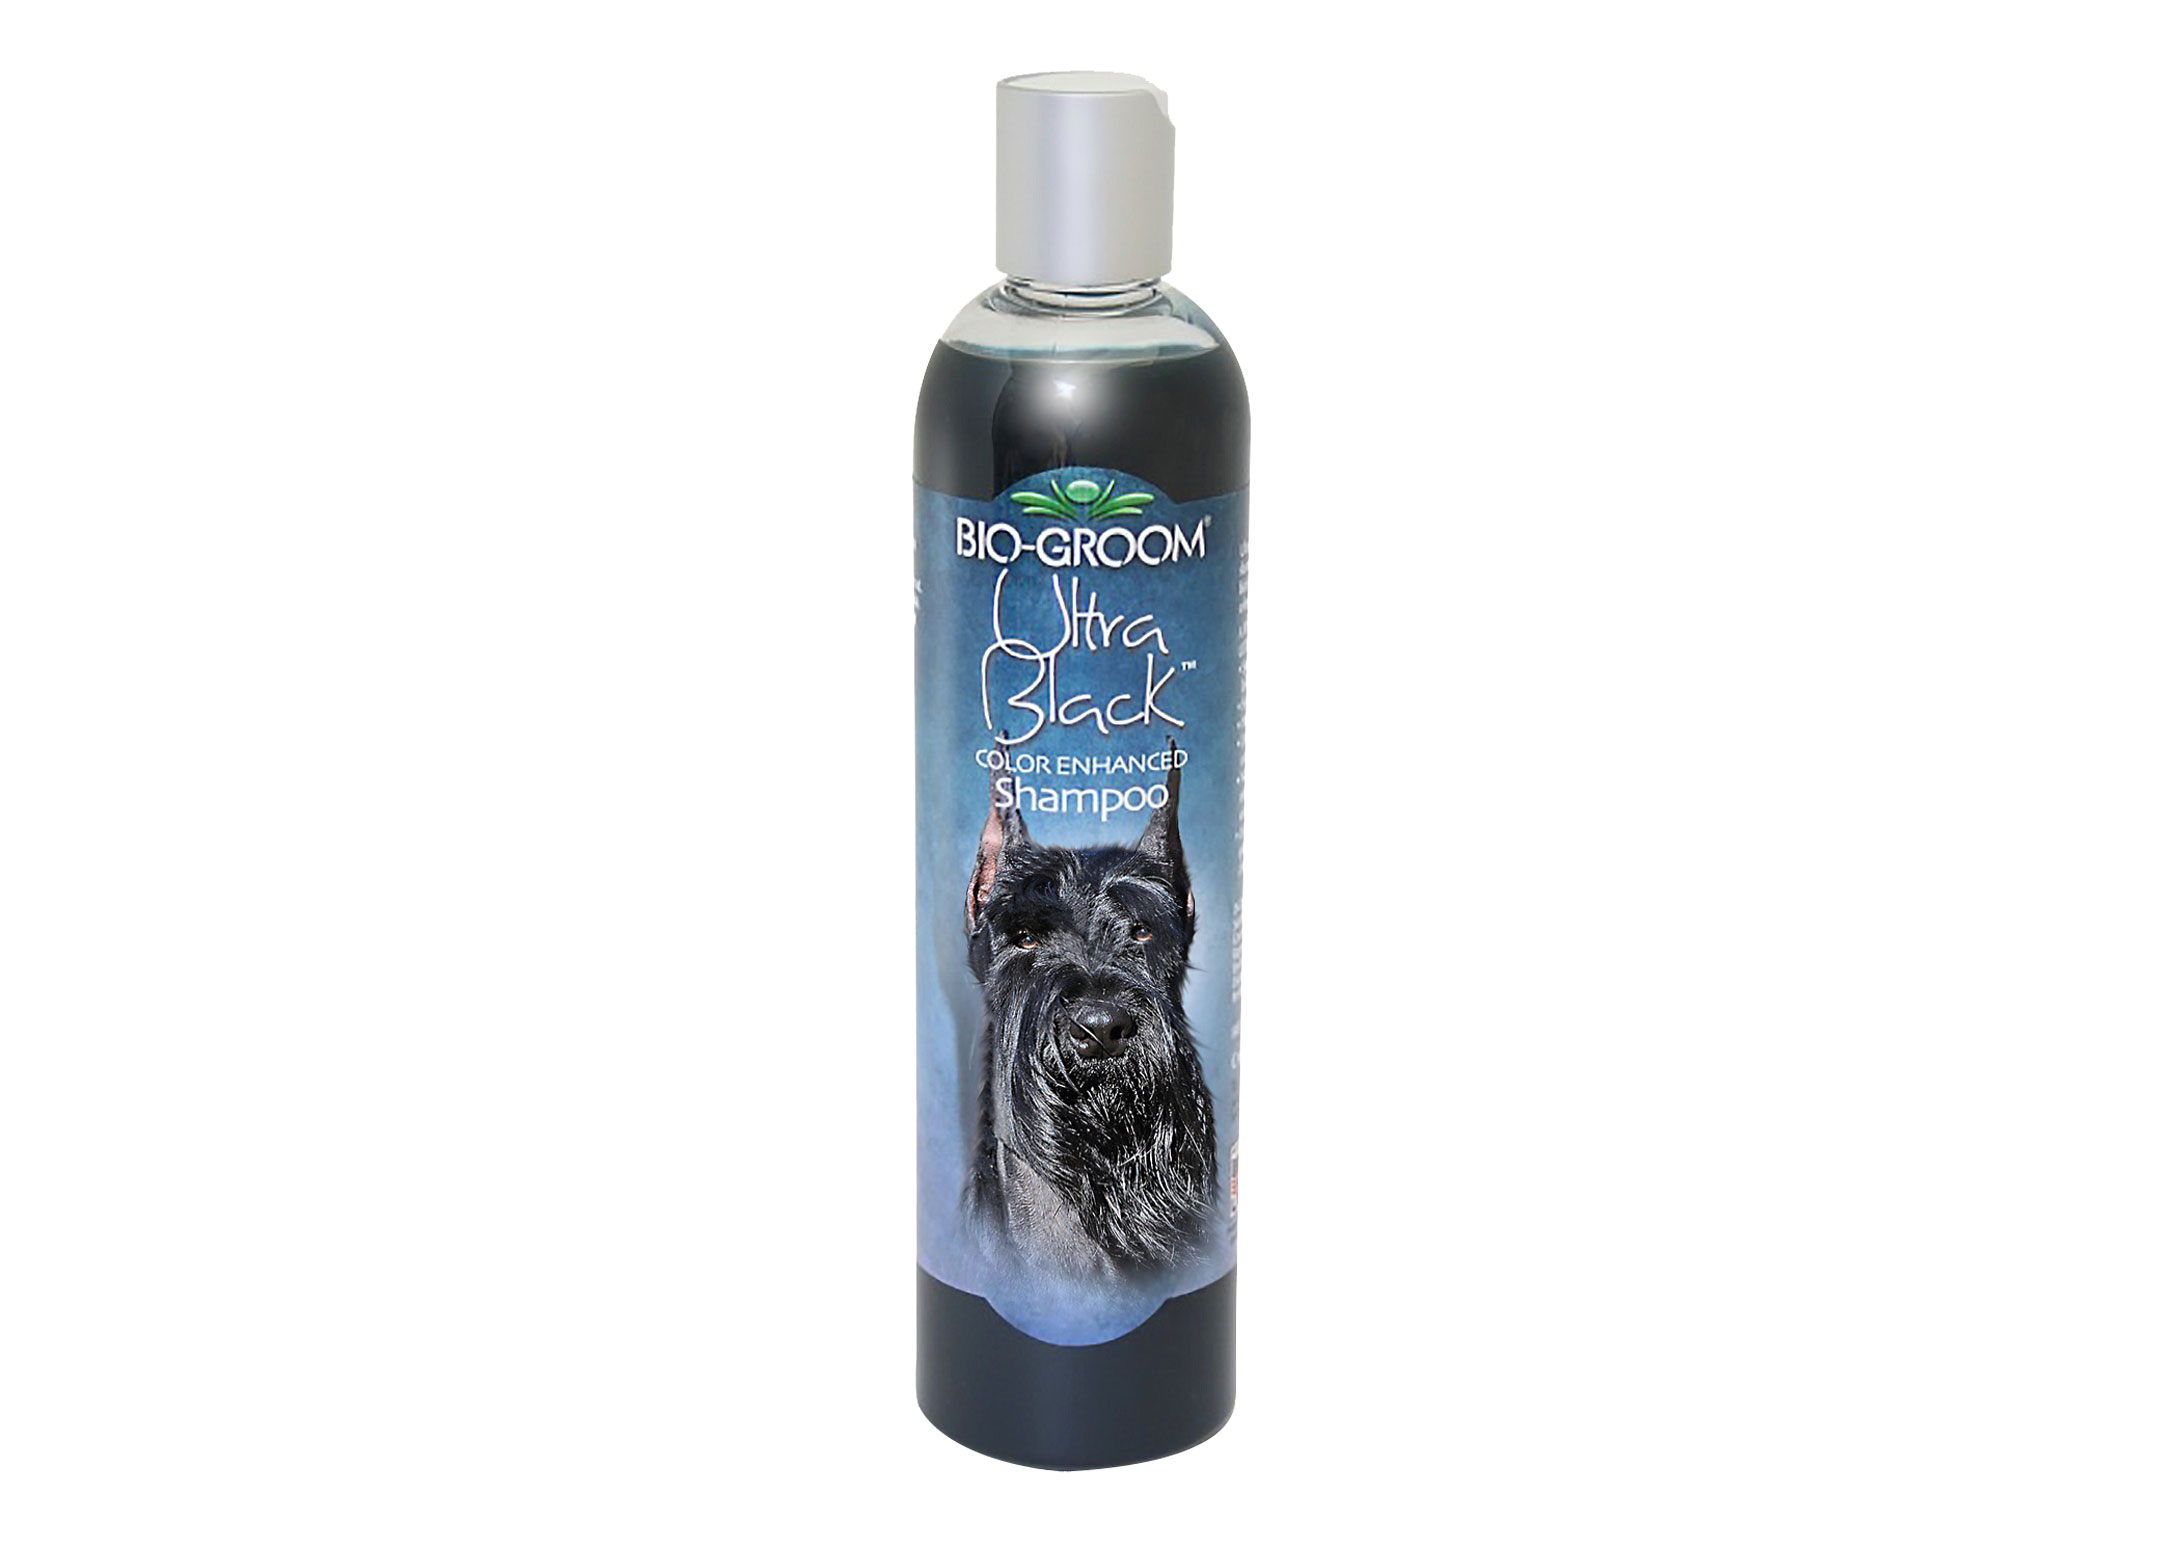 Bio Groom Ultra Black Shampoo For Dogs, Cats And Horses